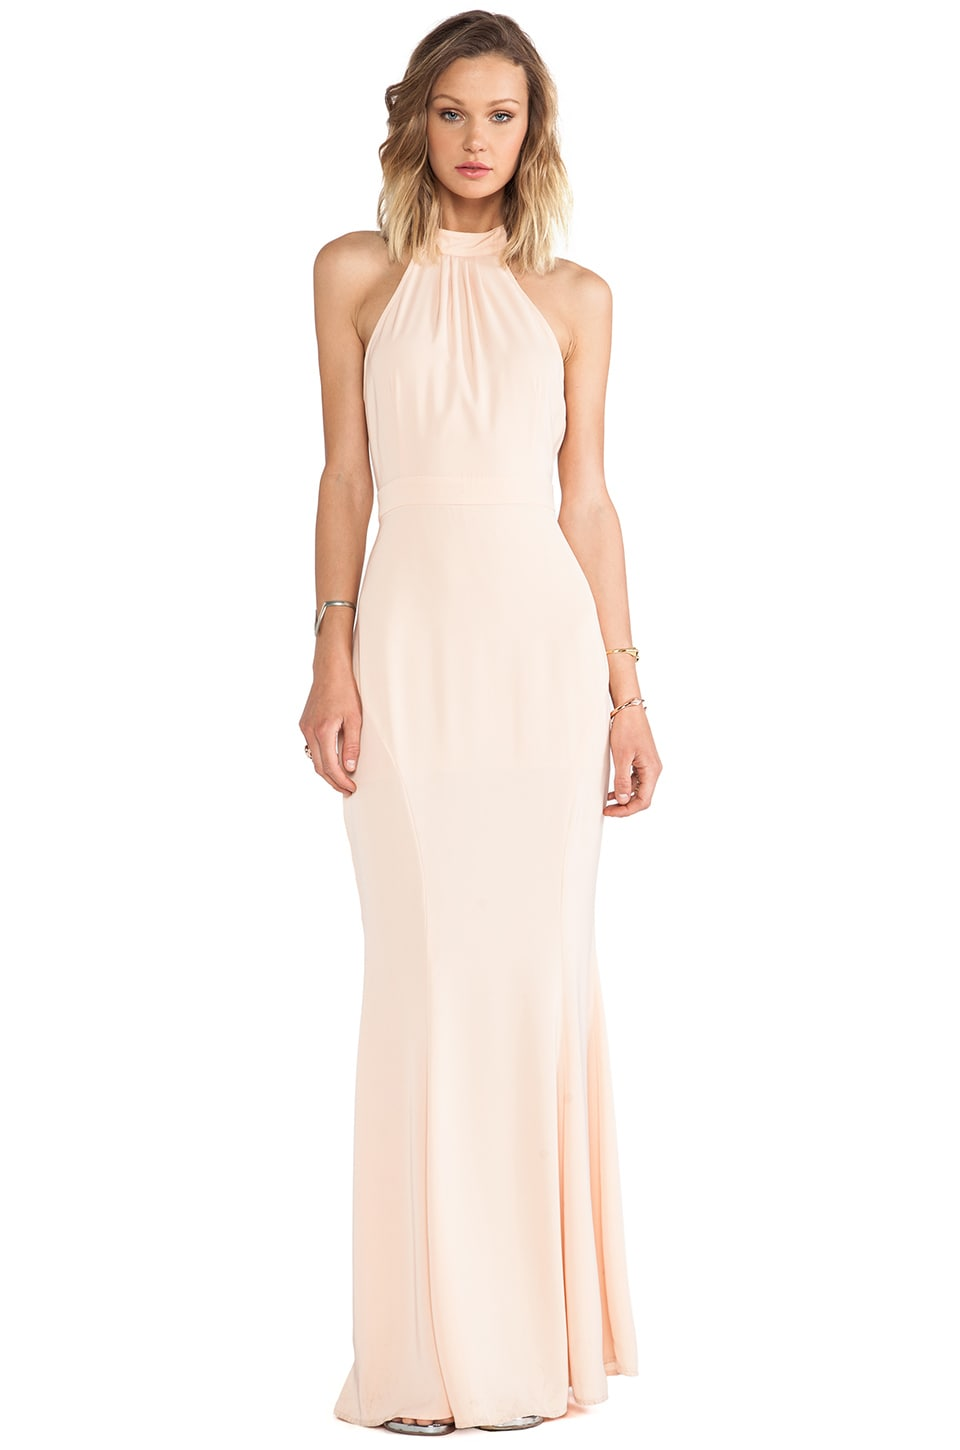 JARLO Caden Dress in Nude